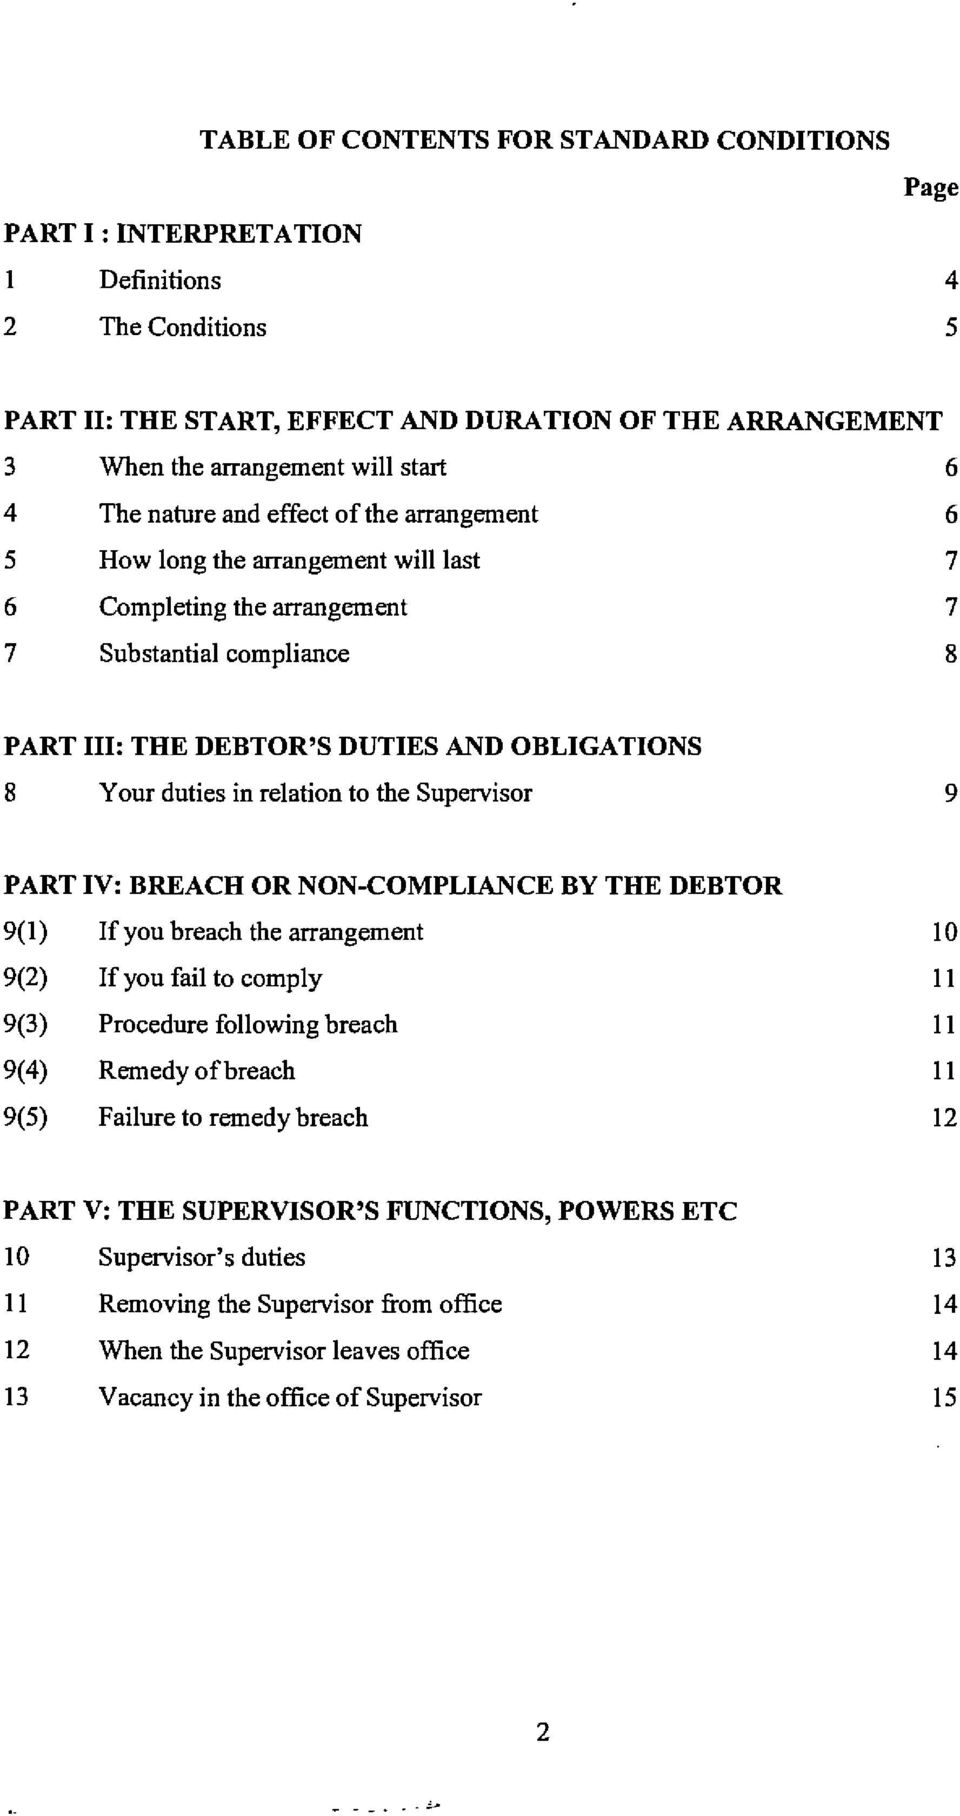 duties in relation to the Supervisor 9 PART IV: BREACH OR NON-COMPLIANCE BY THE DEBTOR 9(1) If you breach the arrangement 9(2) If you fail to comply 9(3) Procedure following breach 9(4) Remedy of